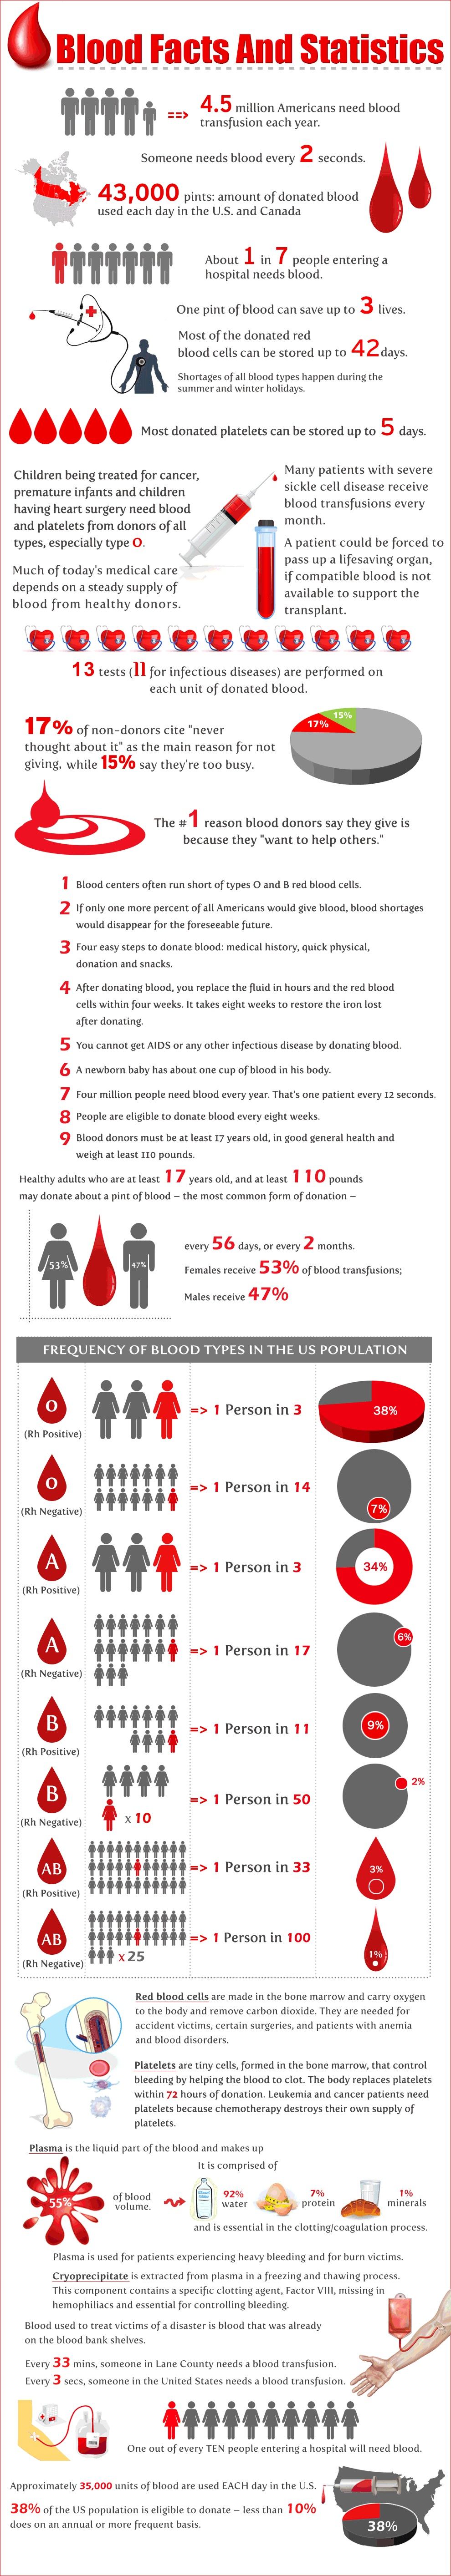 blood-facts-and-statistics